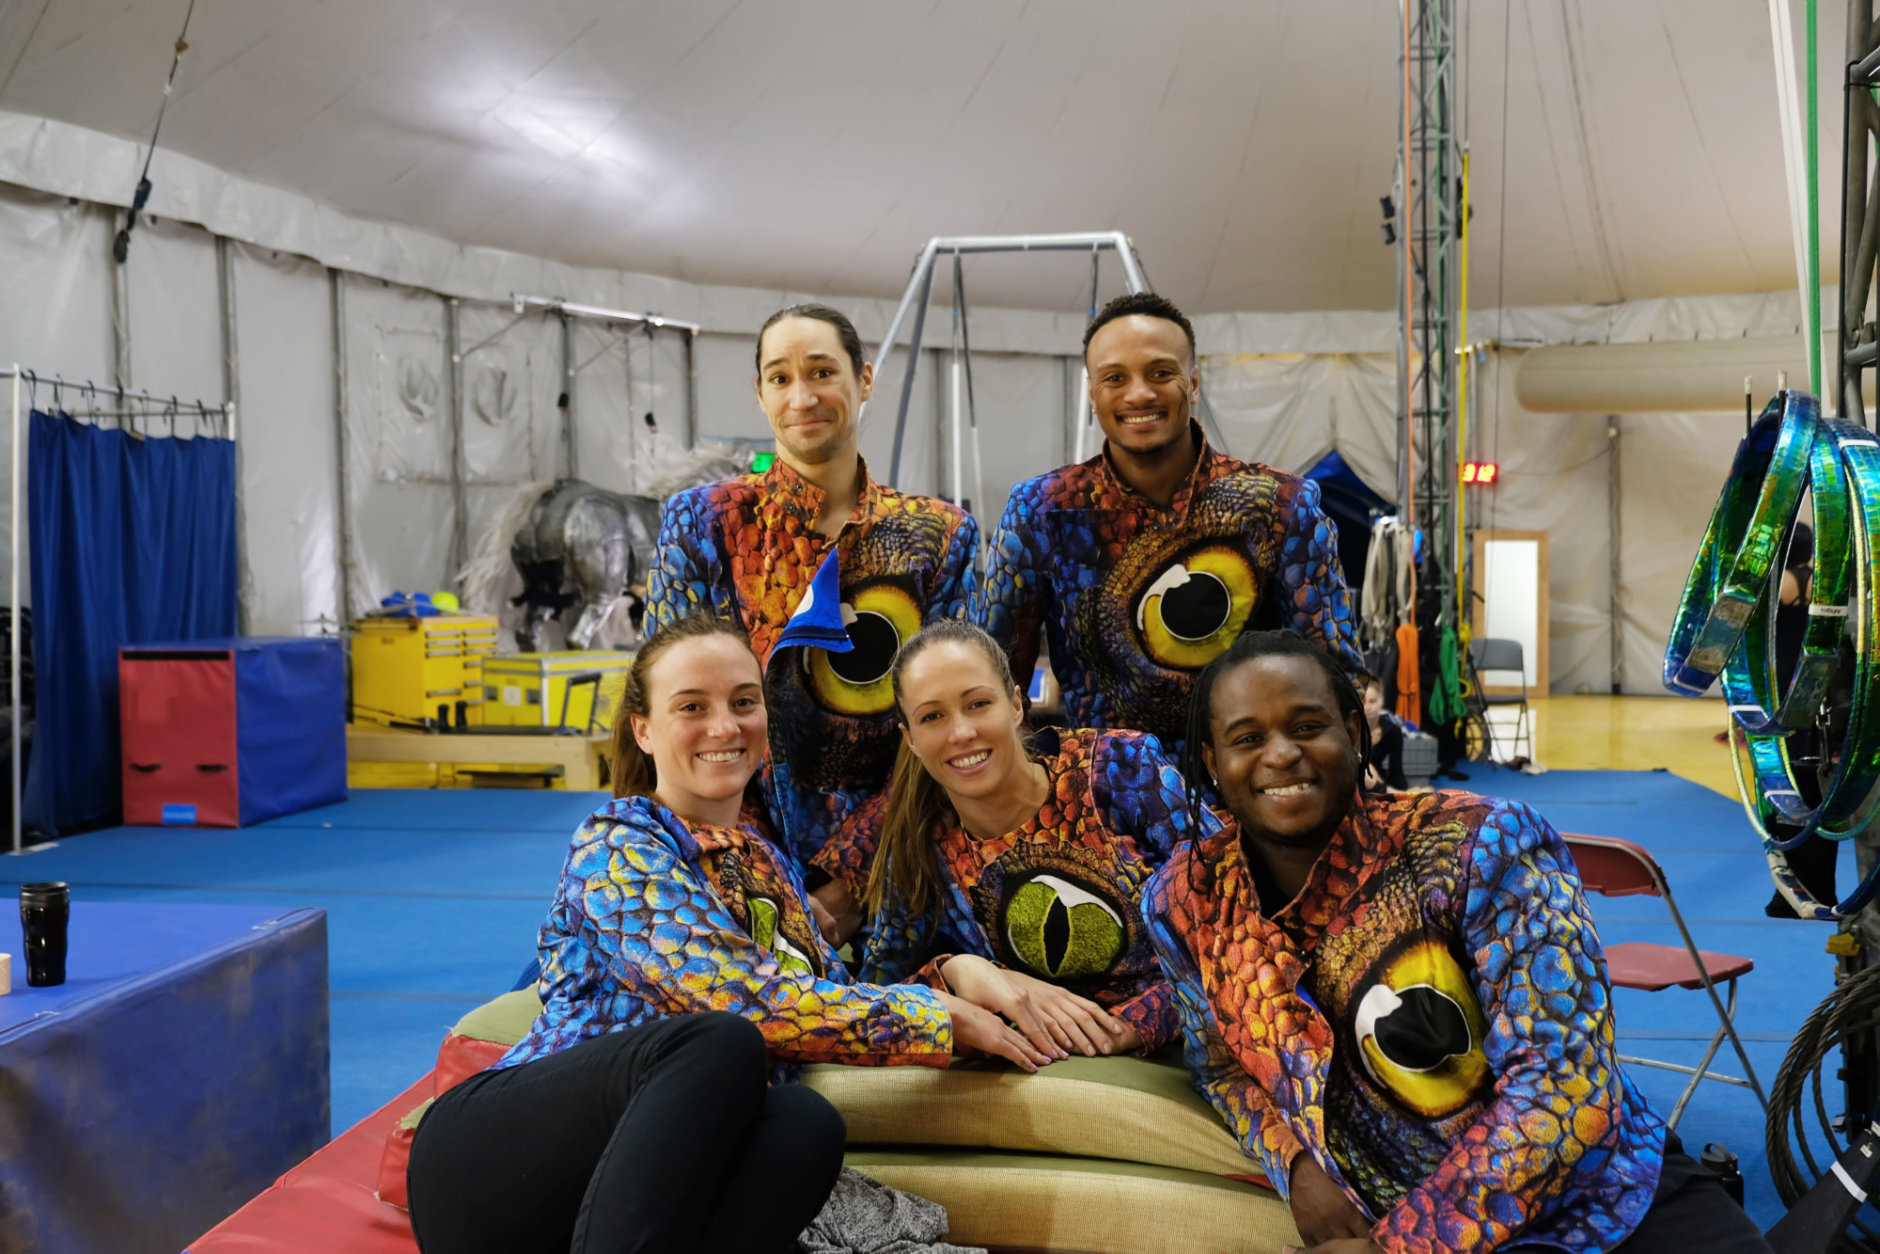 """Performers dressed in their lizard costumes backstage during rehearsals for Cirque du Soleil's, """"LUZIA""""."""